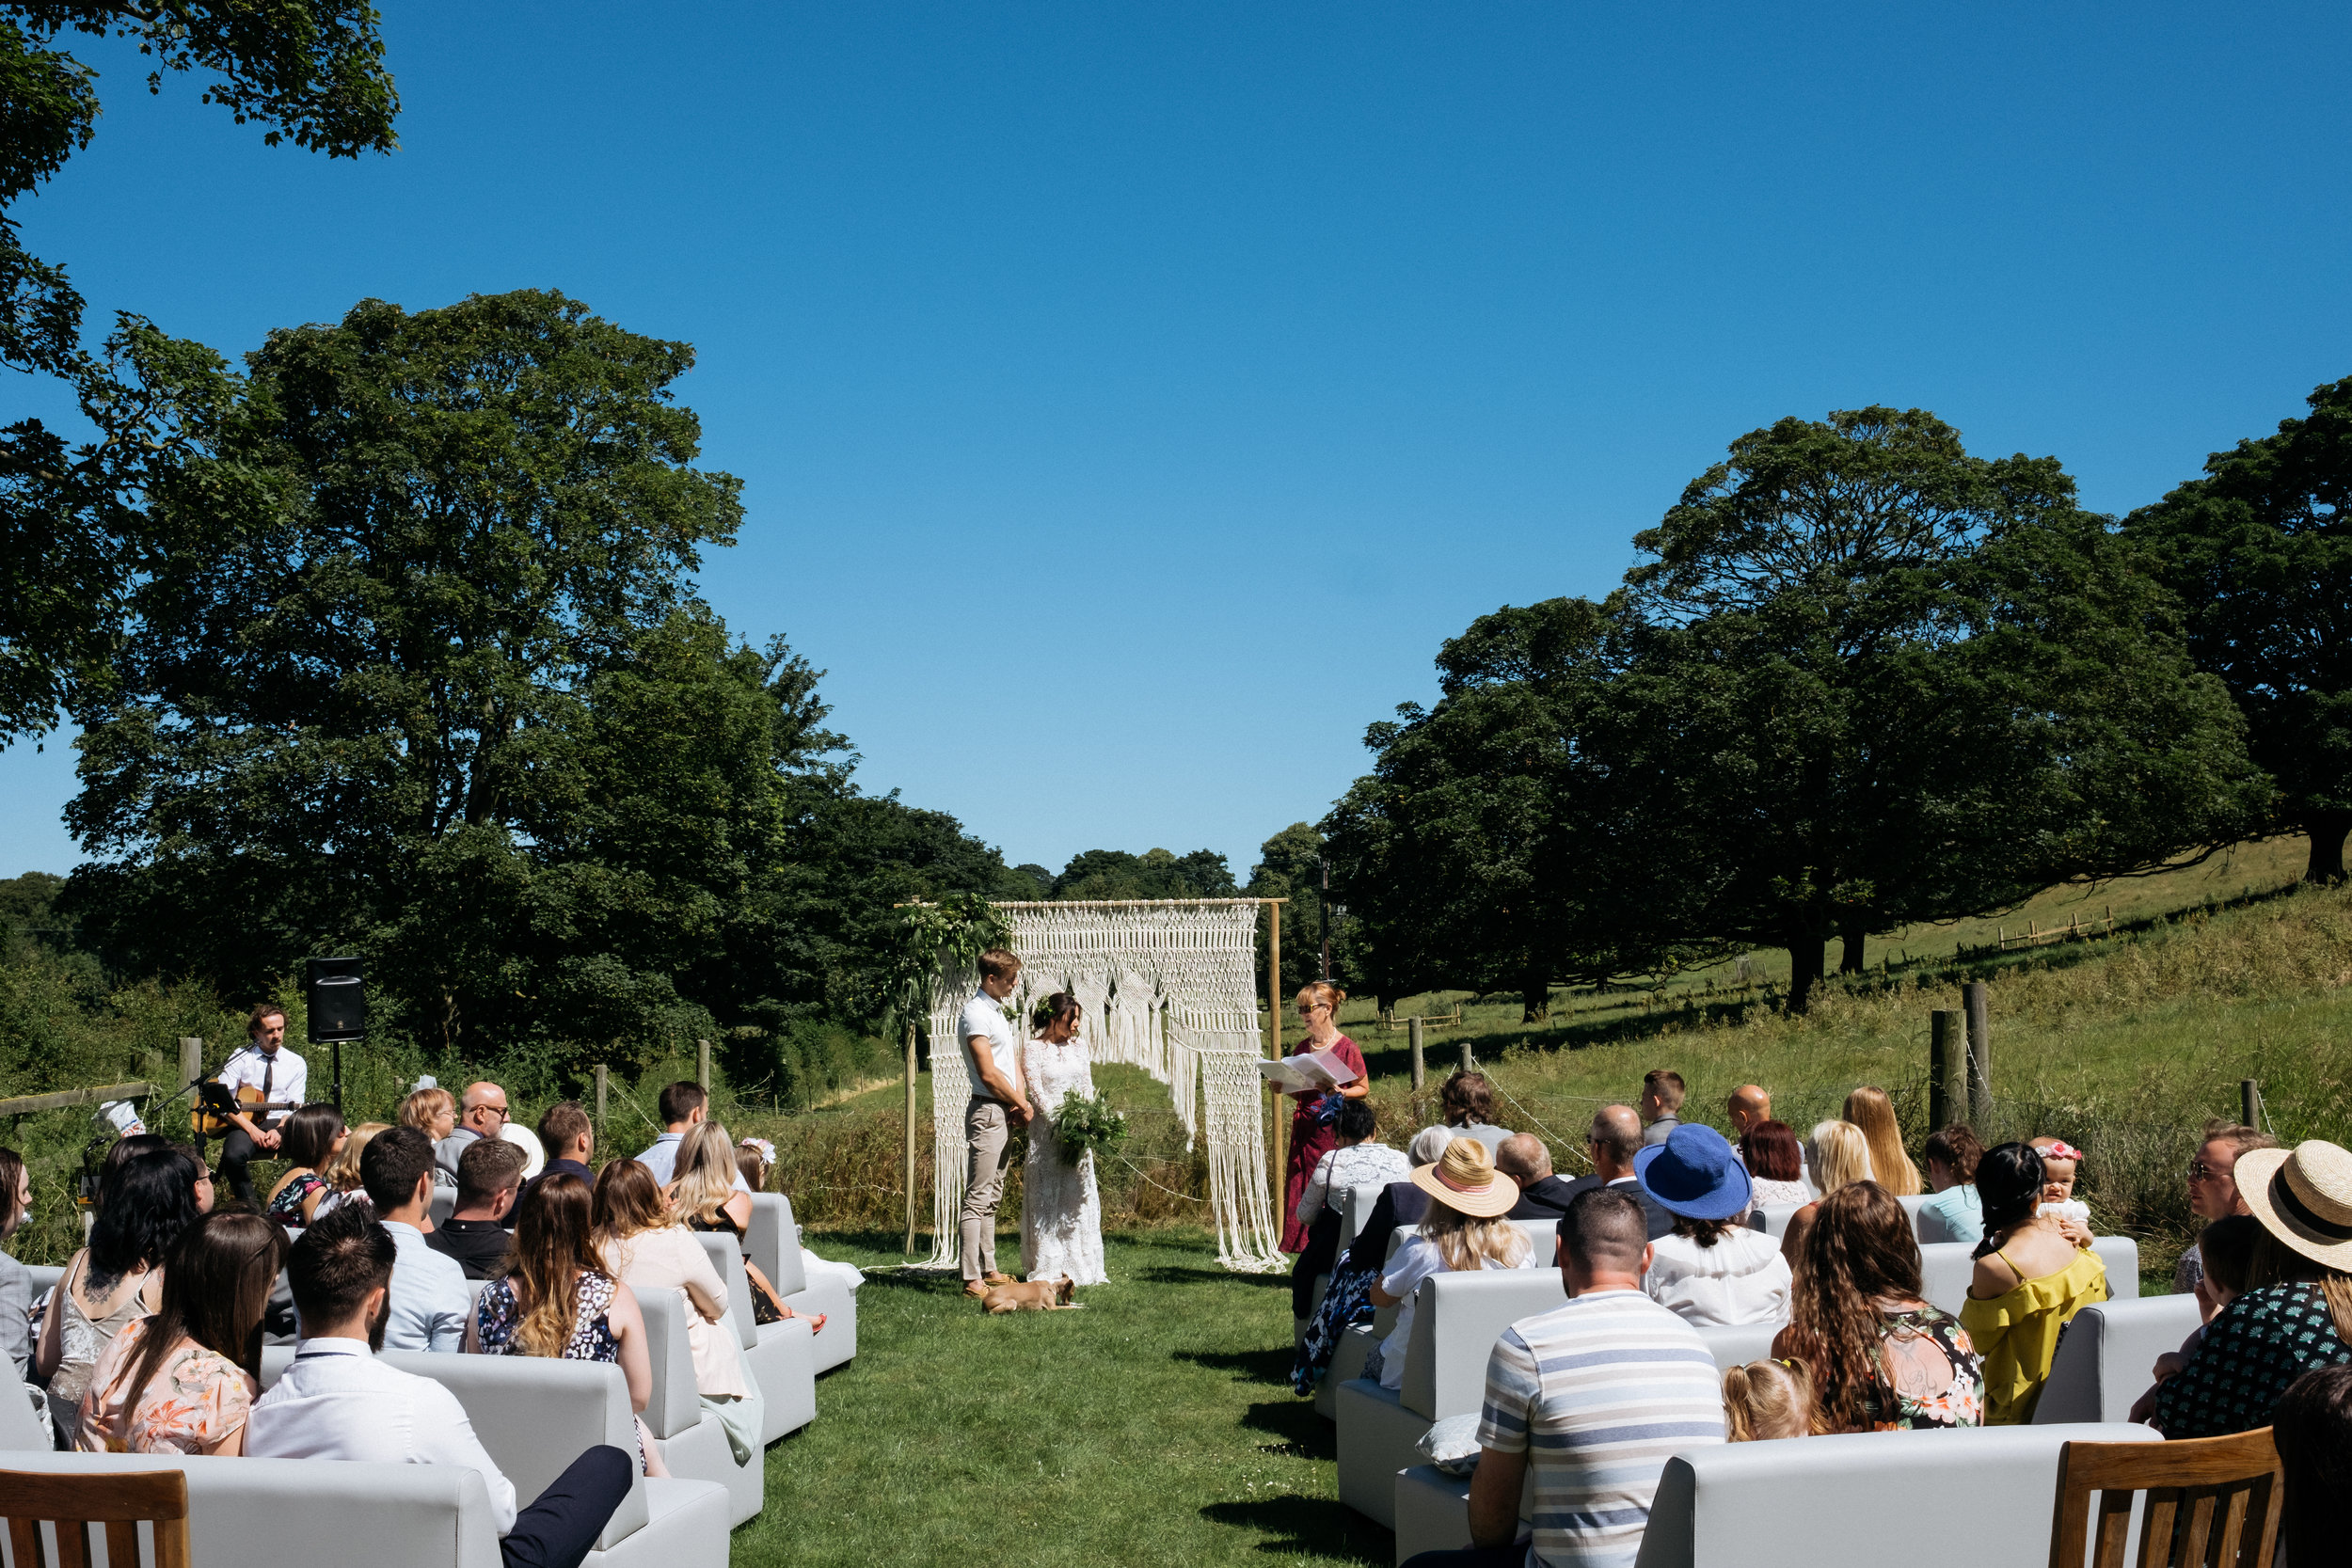 Outdoor wedding ceremony with macrame wedding arch